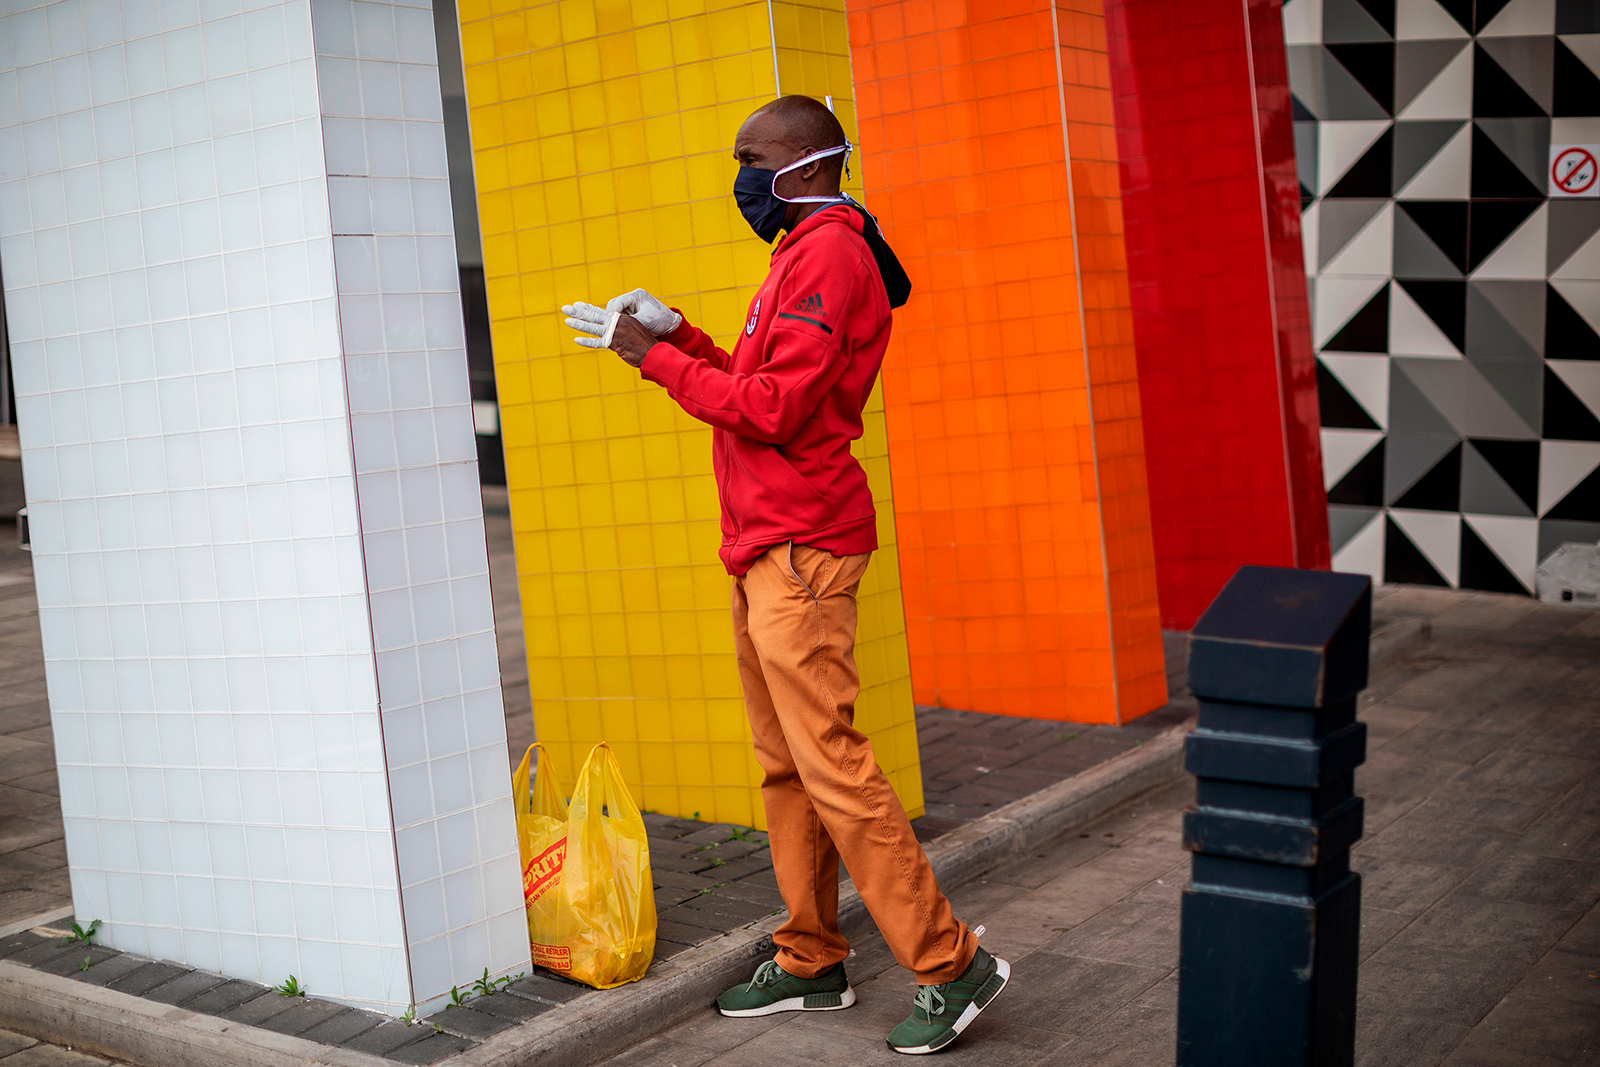 A man wearing a face mask puts on a pair of gloves at the entrance of a shopping mall in Alexandra, Johannesburg, South Africa on April 10.